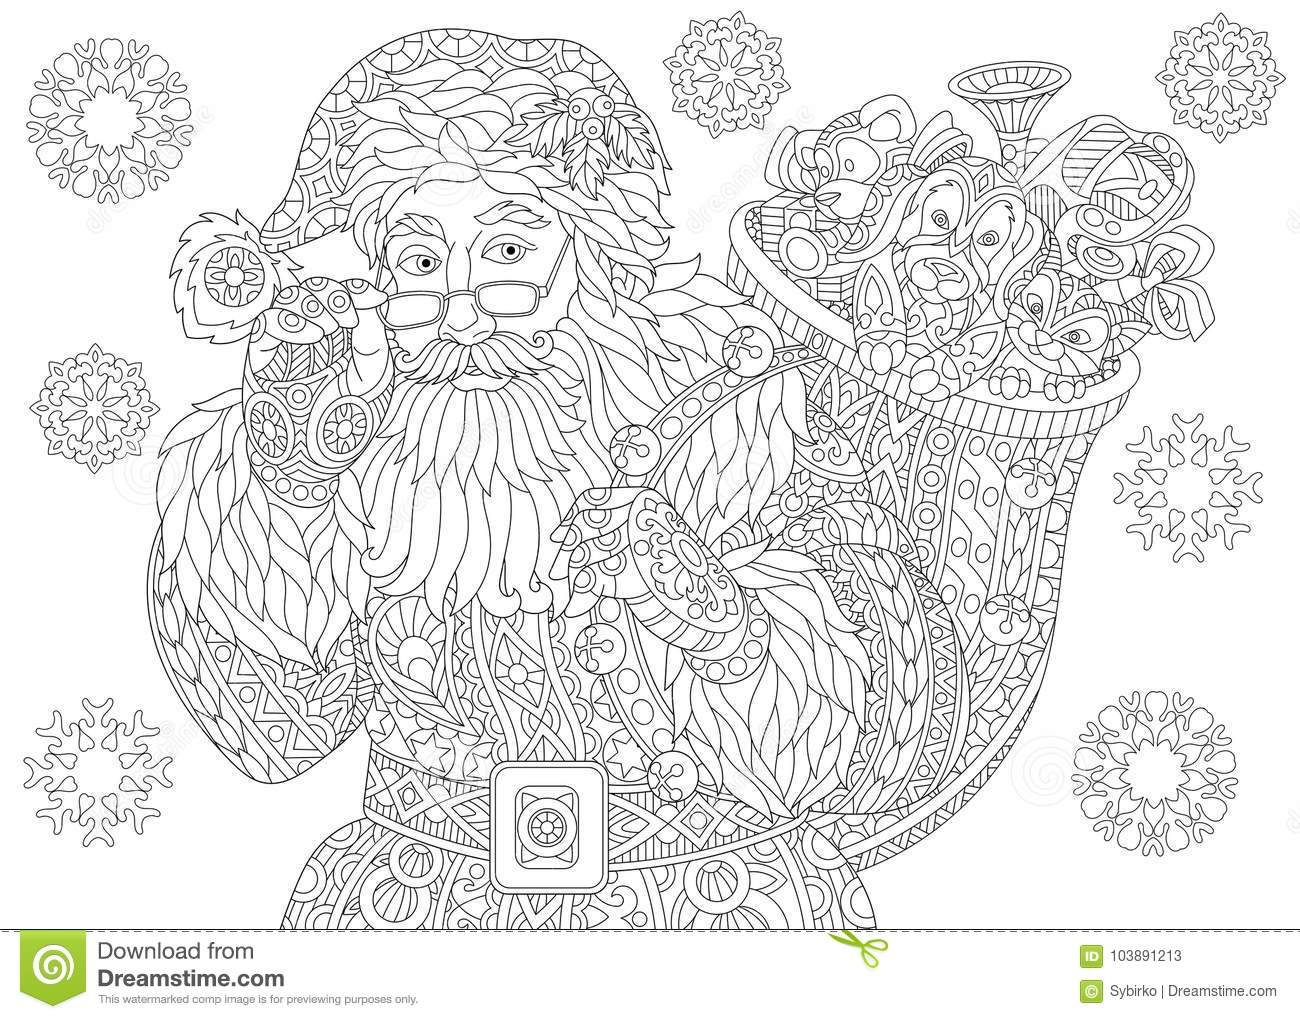 Vintage Santa Coloring Page With Claus And Christmas Snowflakes Stock Vector